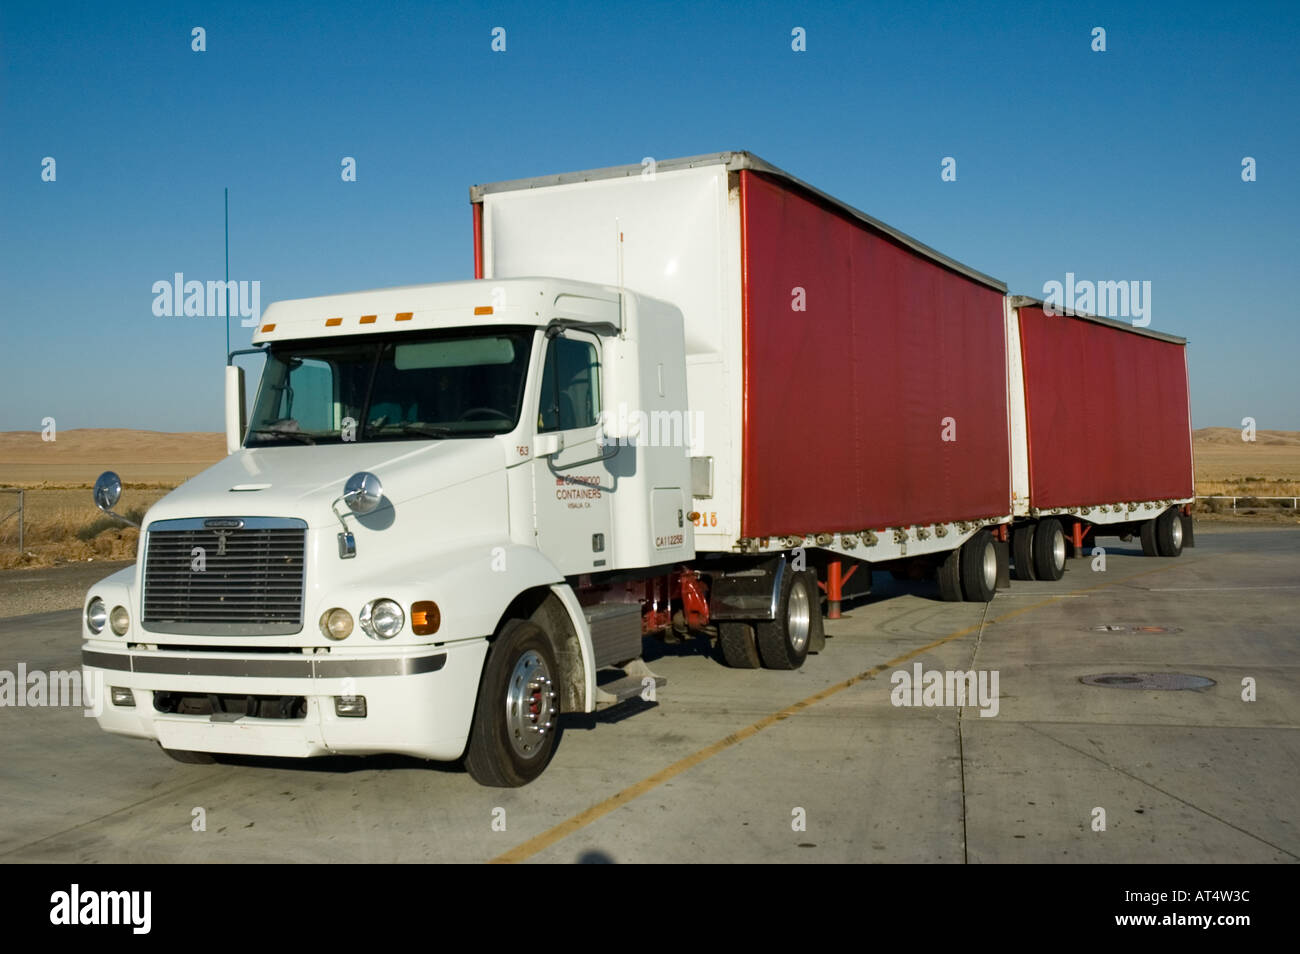 truck waiting in parking lot - Stock Image